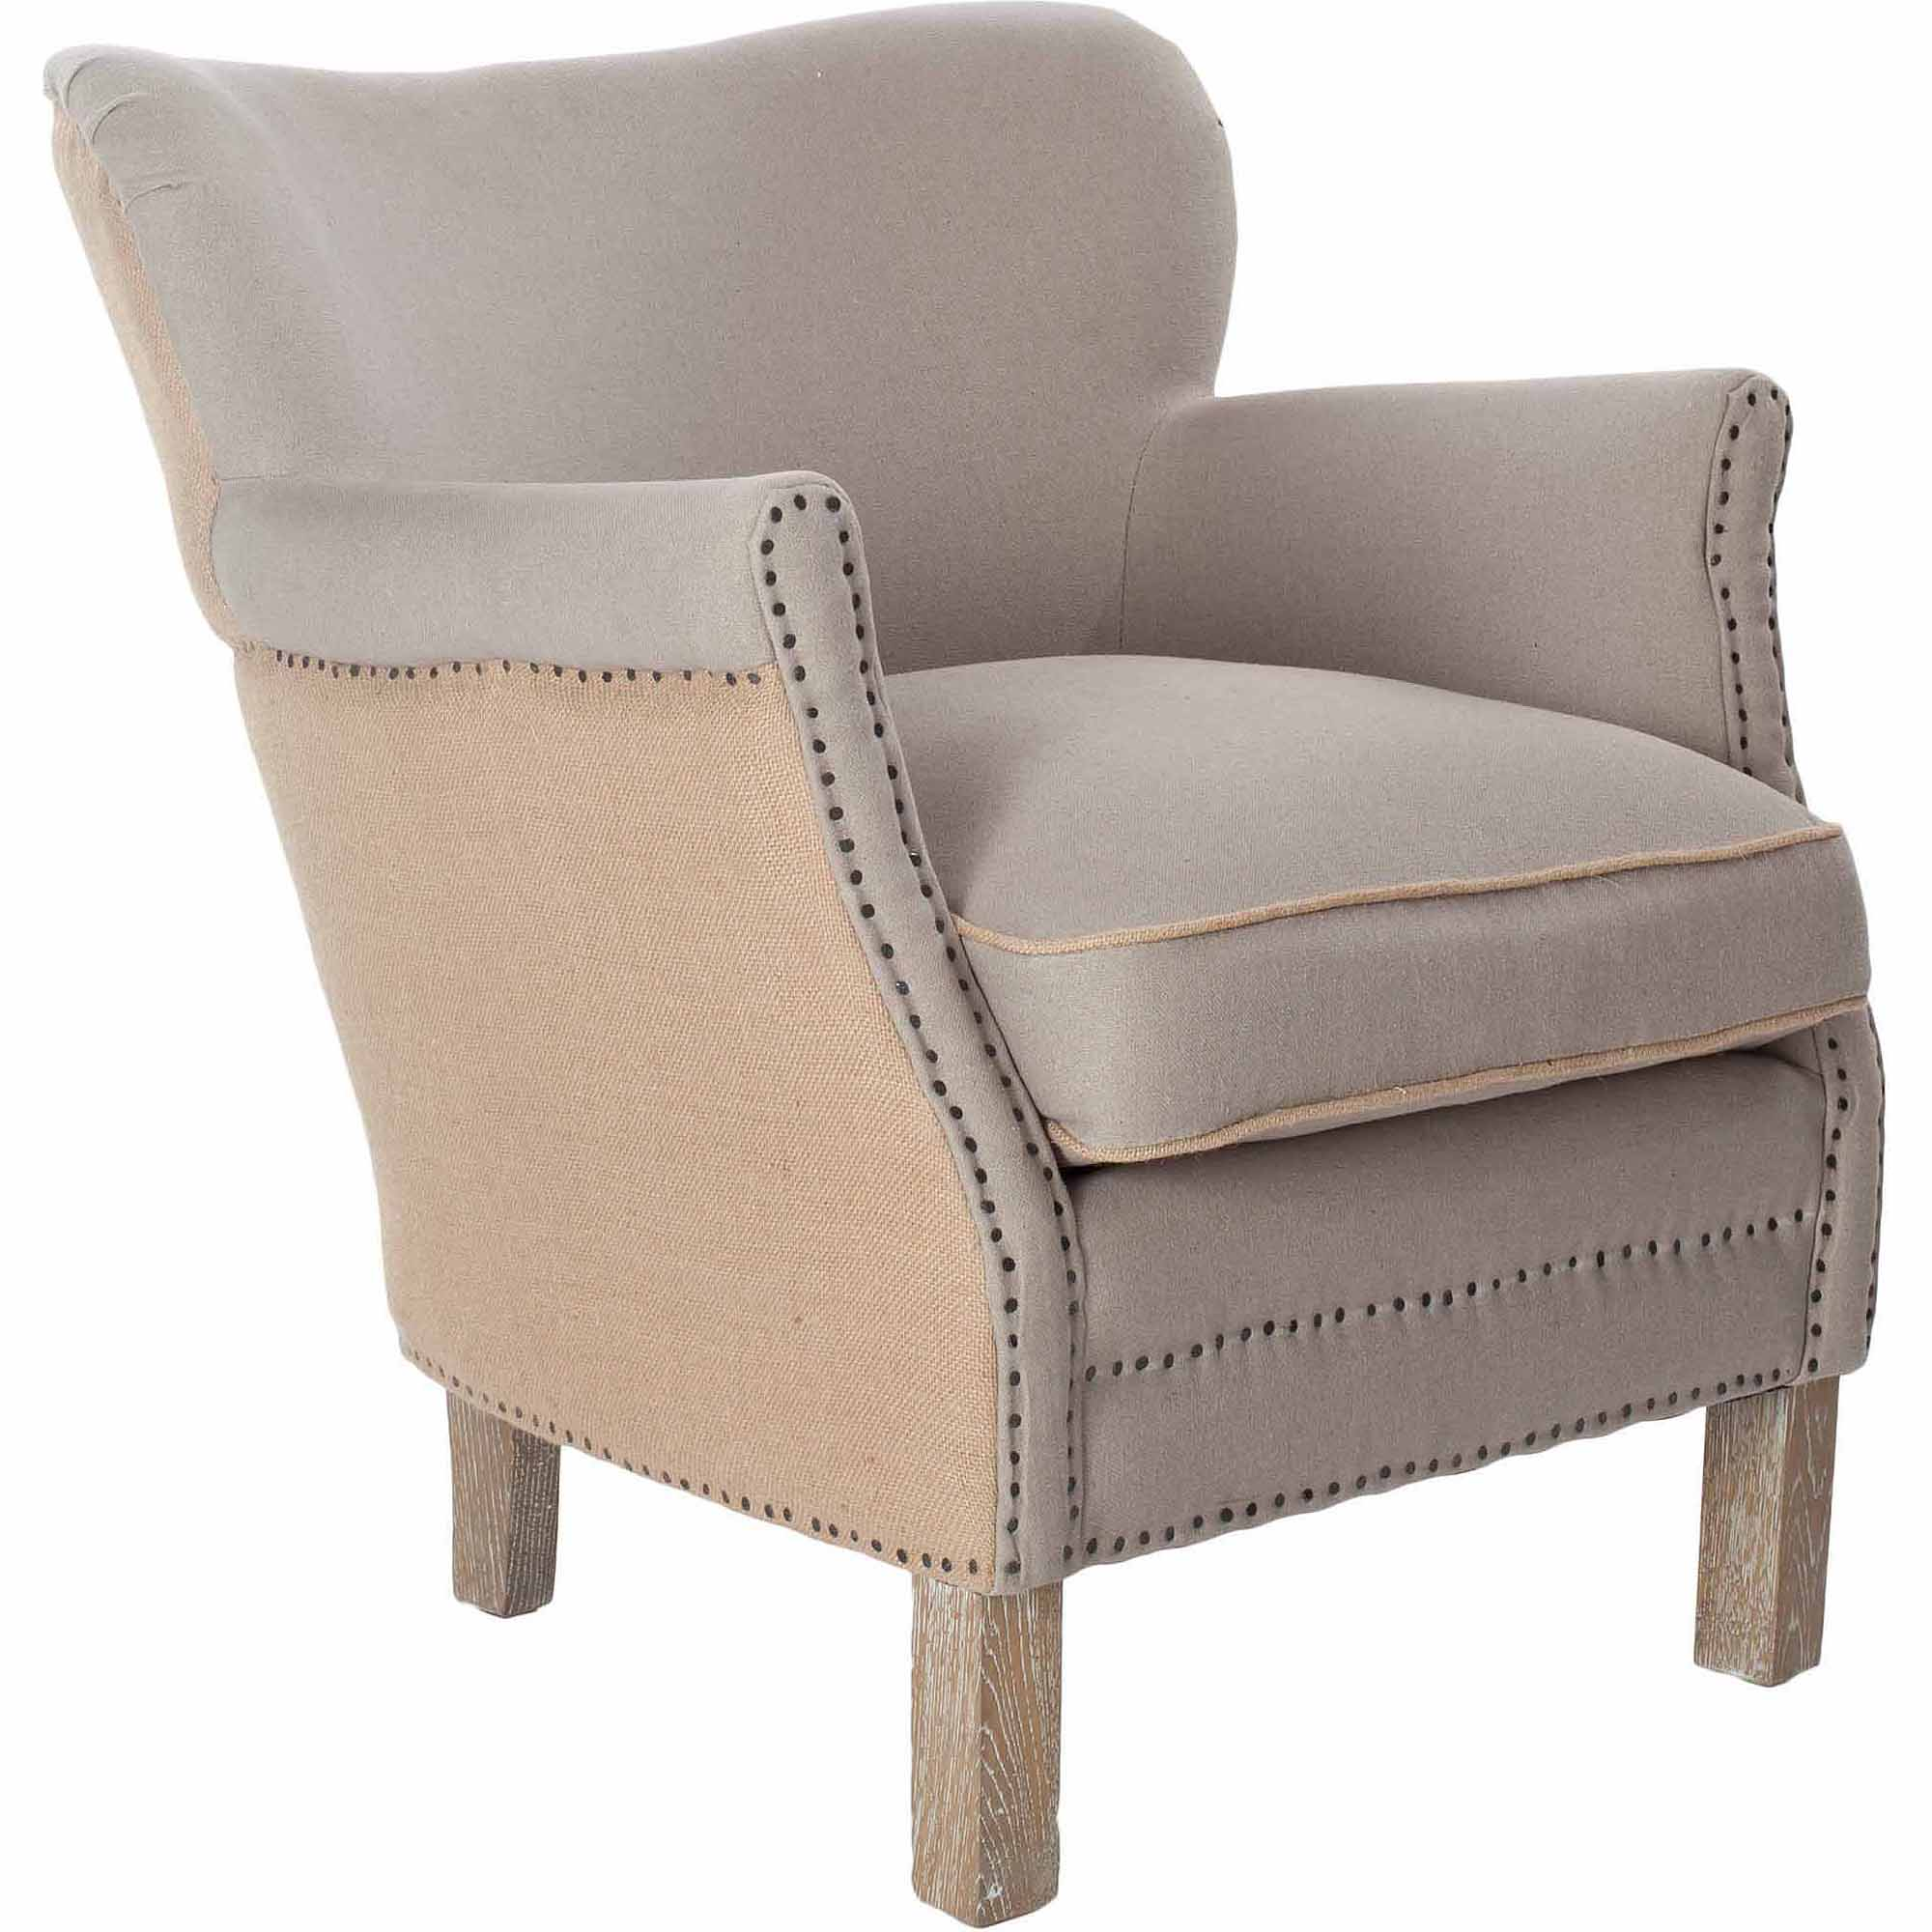 Safavieh Jenny Upholstered Arm Chair